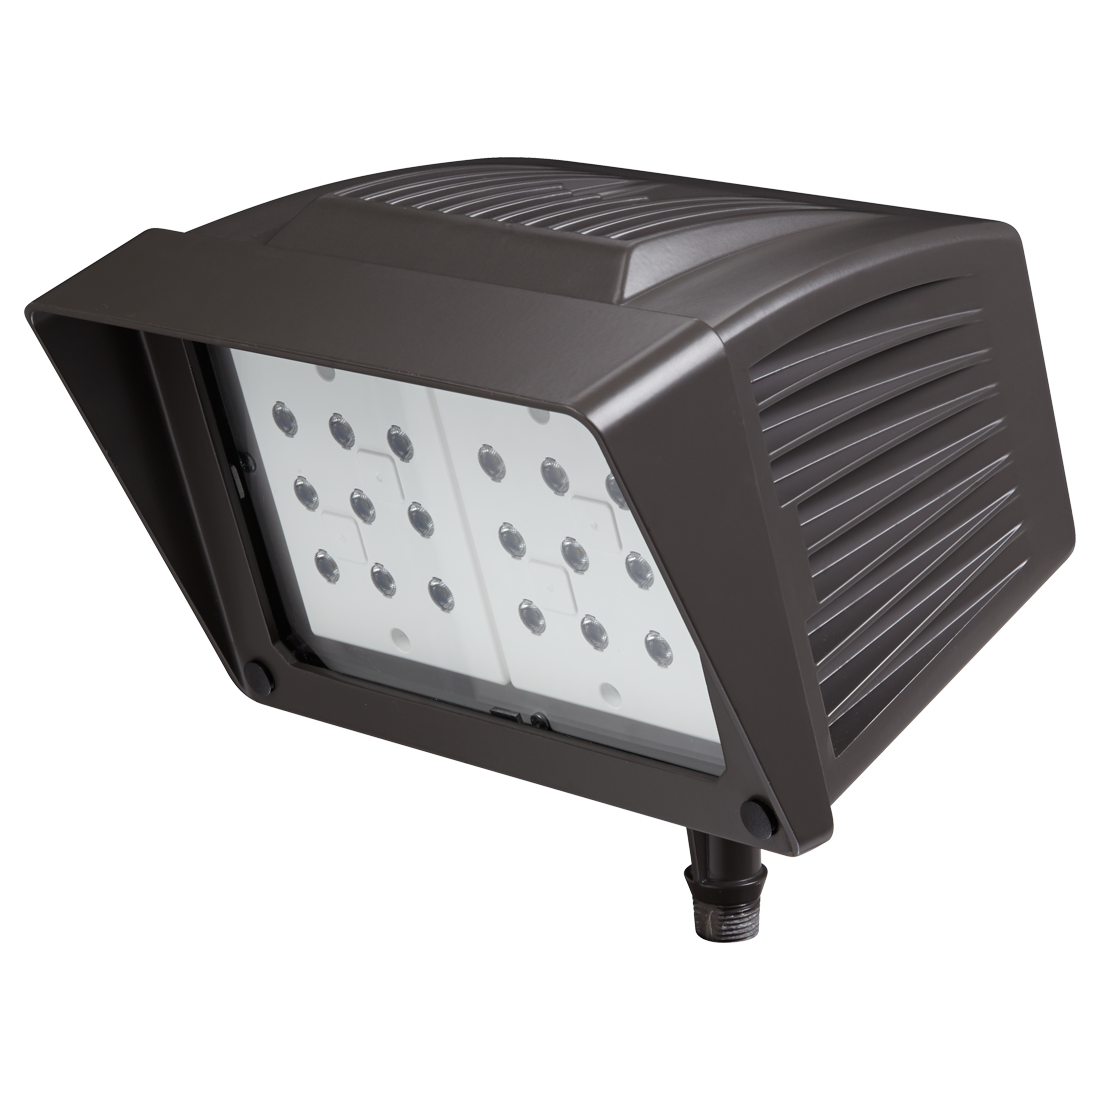 Atlas® PFM43LED Floodlight Fixture,) LED Lamp, 89 W Fixture, 120/208/240/277 VAC, Polyester Powder Coated Housing